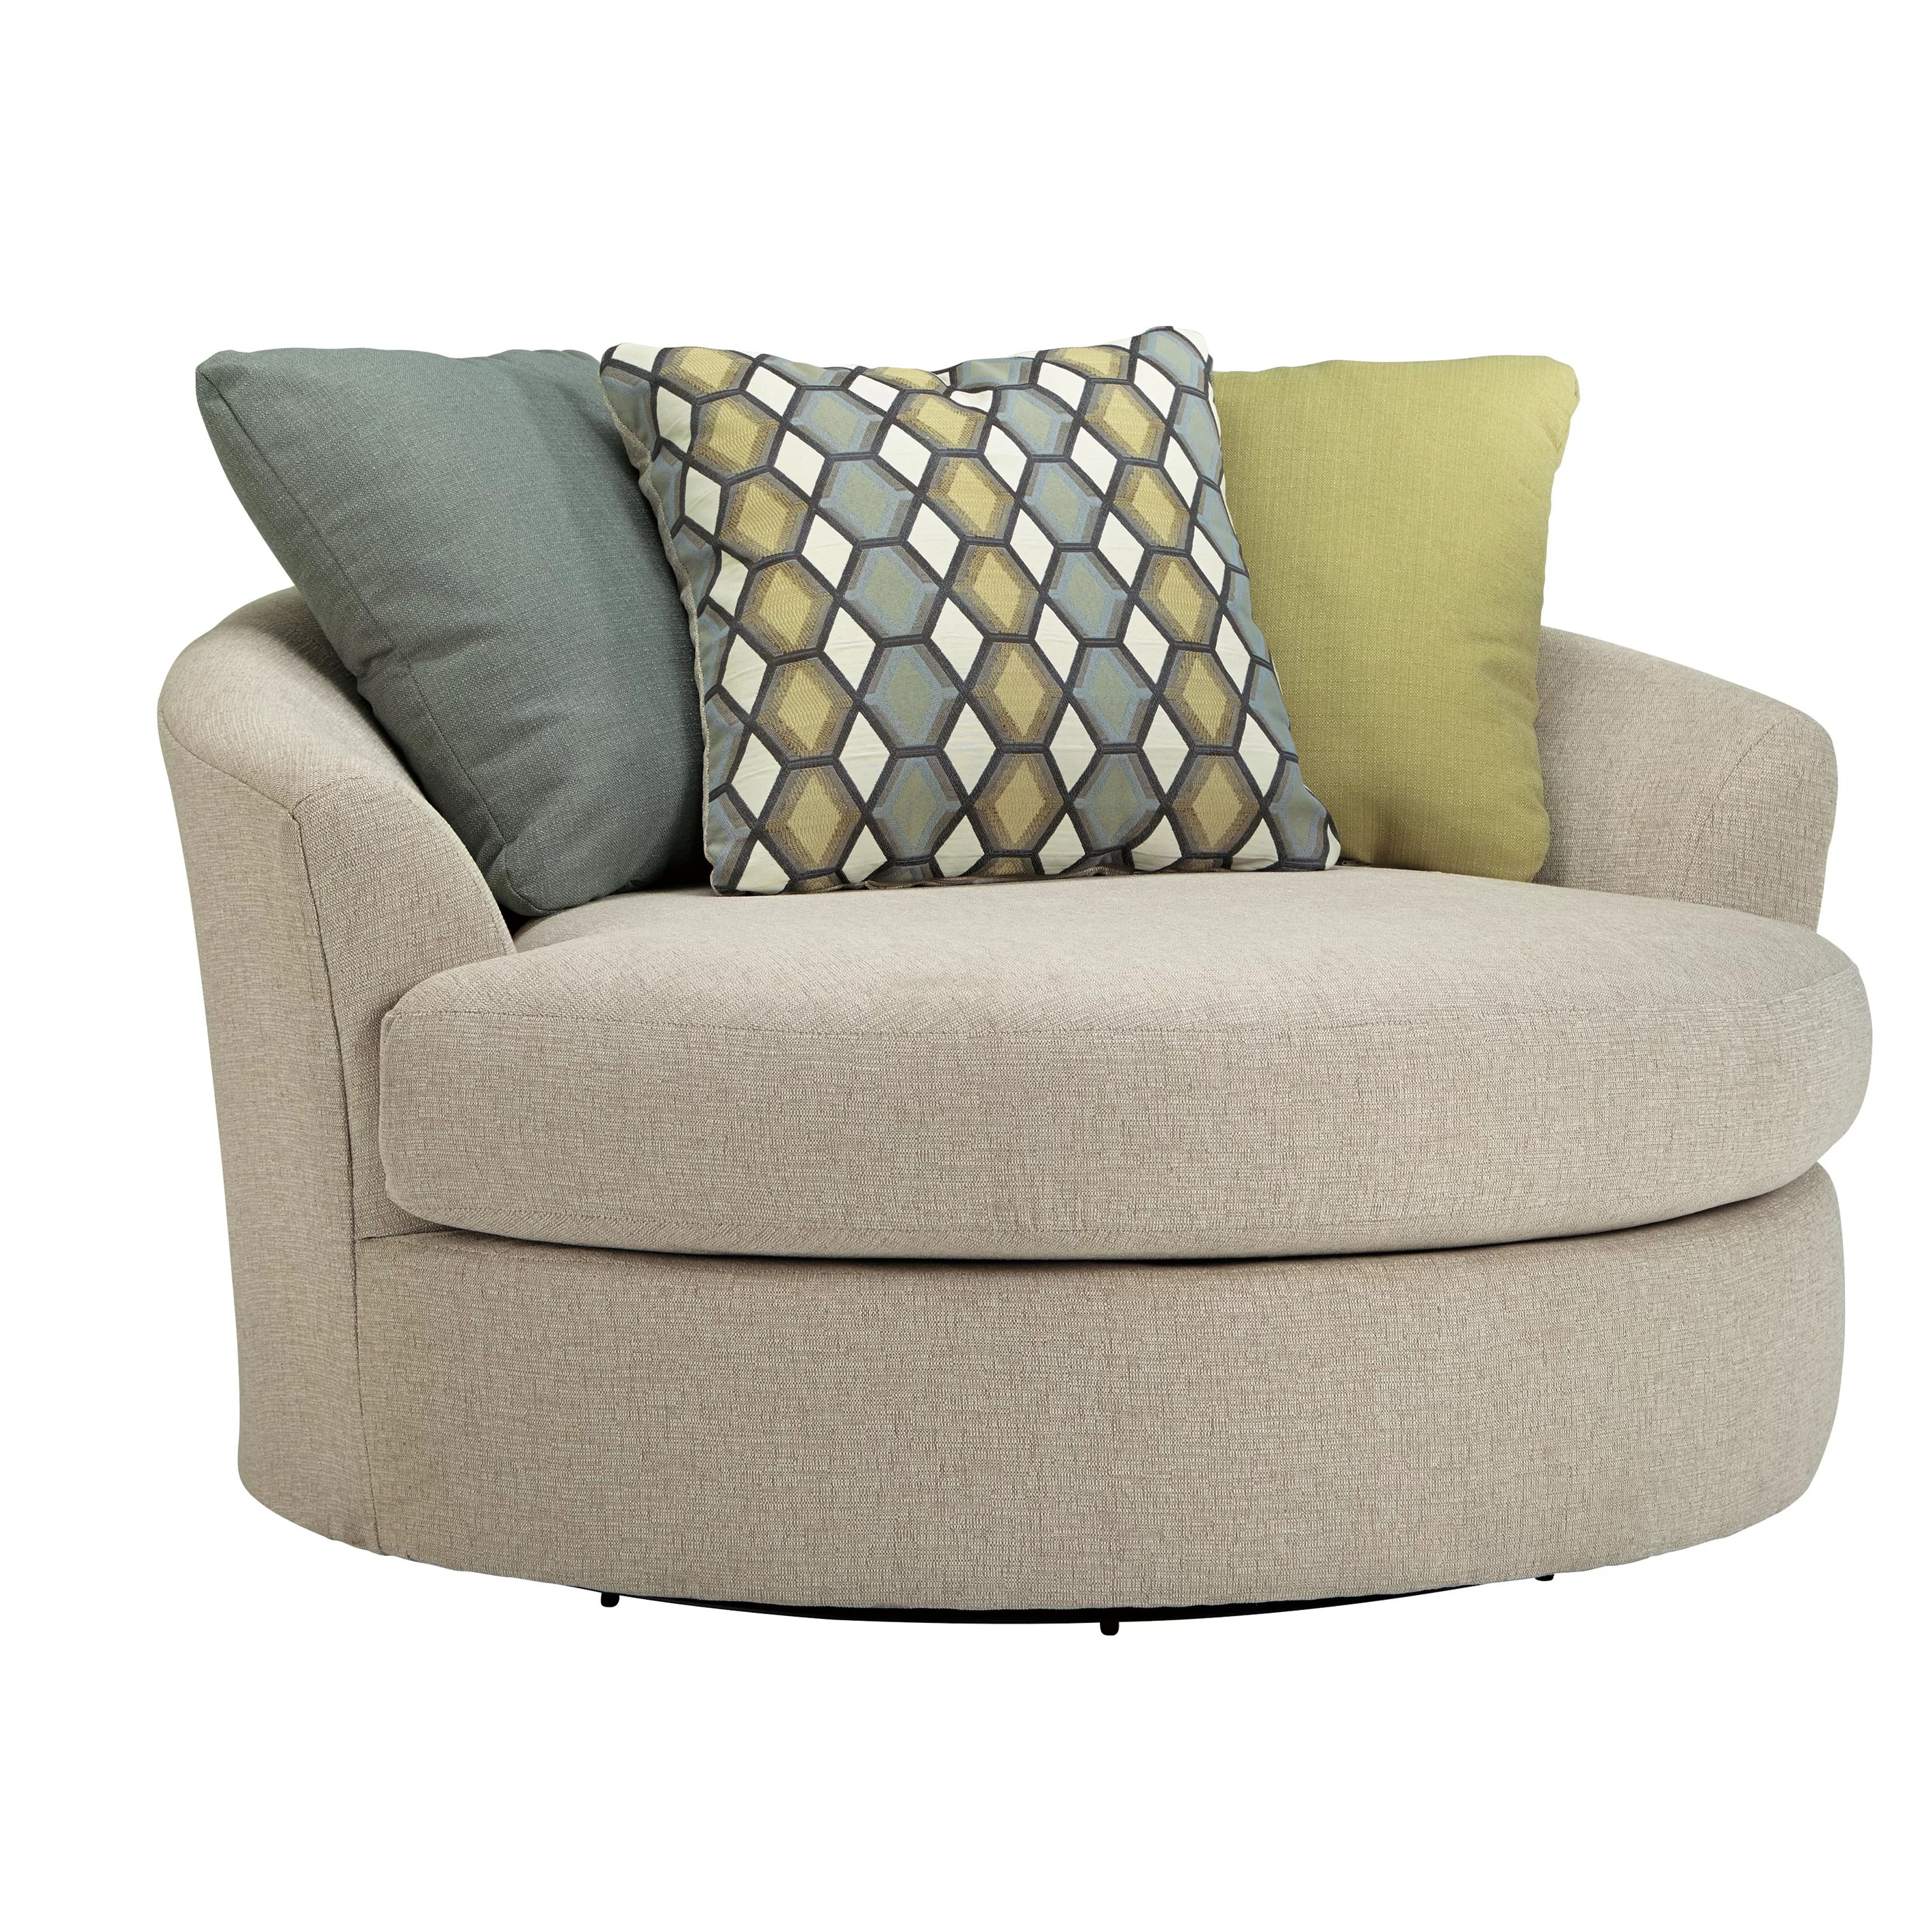 Barrel Chair Swivel Latitude Run Bradfield Oversized Swivel Barrel Chair